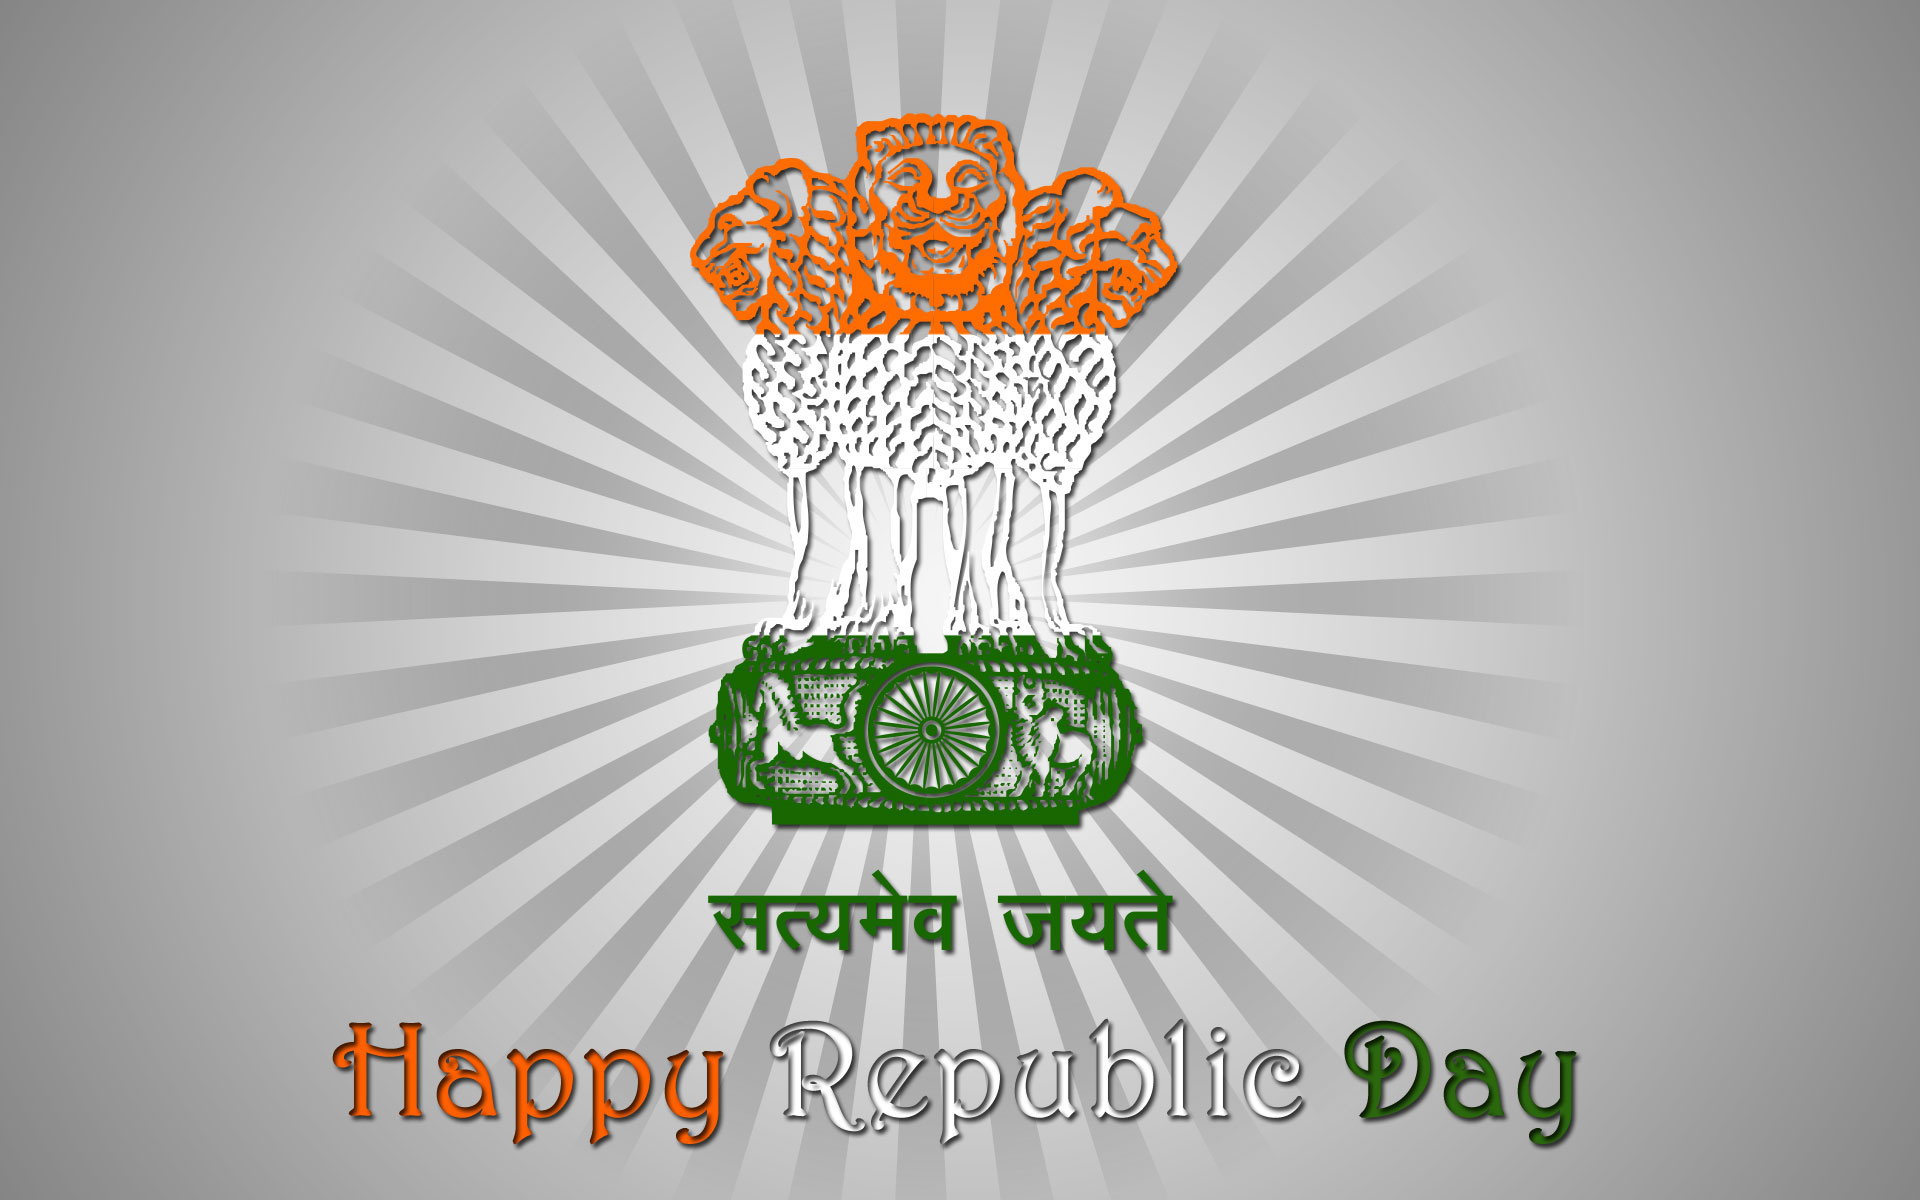 Happy Republic Day Images For Windows 8